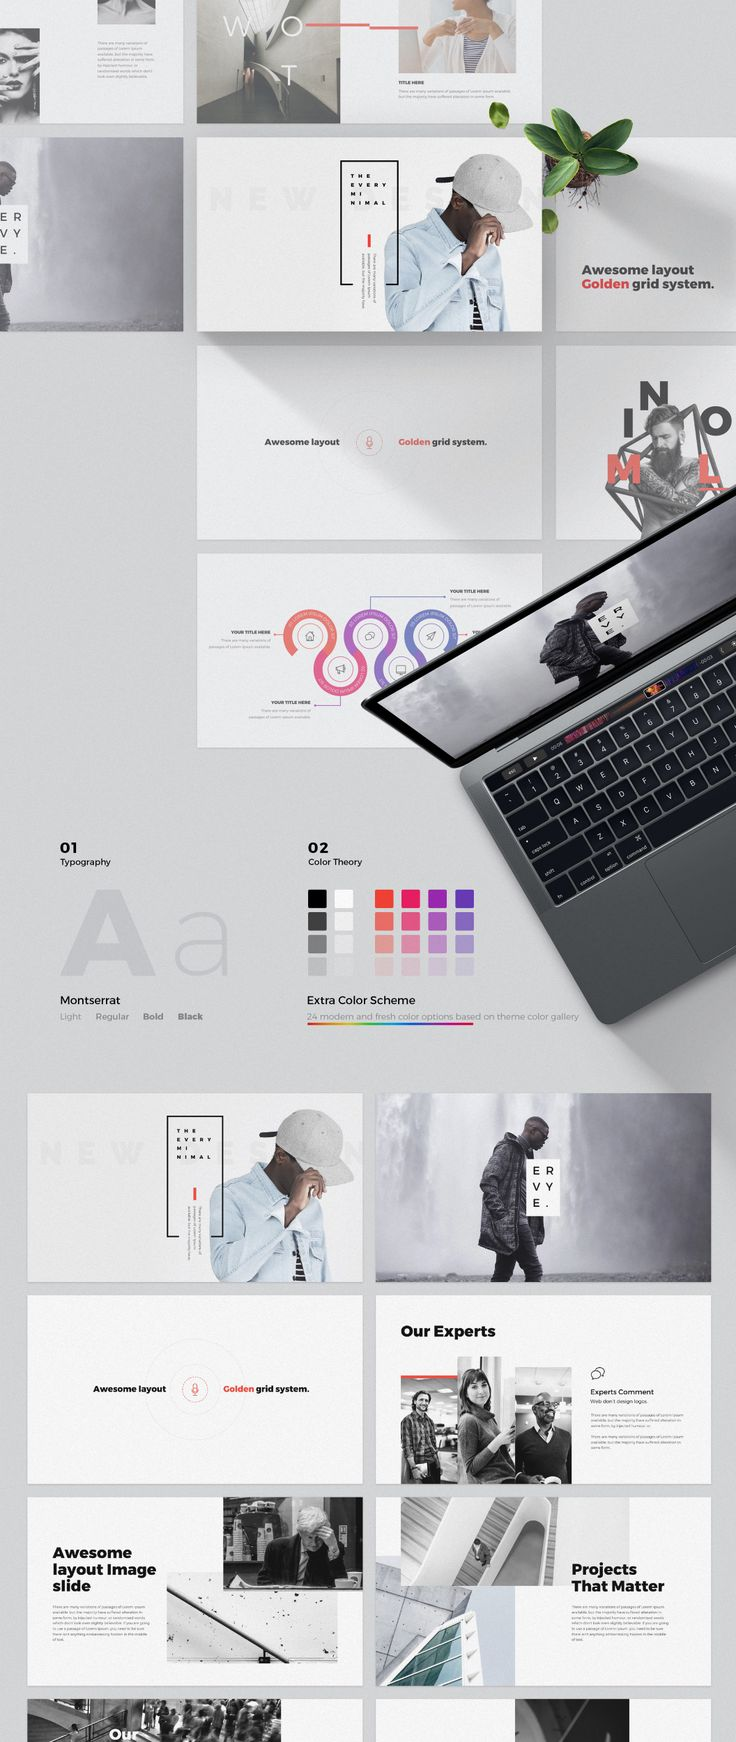 A powerful & creative slide presentation available for PowerPoint and Keynote. It comes with 80+ unique presentation slides with great professional layout and creative design. Every makes it easy to change colors, modify shapes, texts, & charts, all shapes are editable. Includes a fabulous set of 800 vector icons and Apple device mockups.